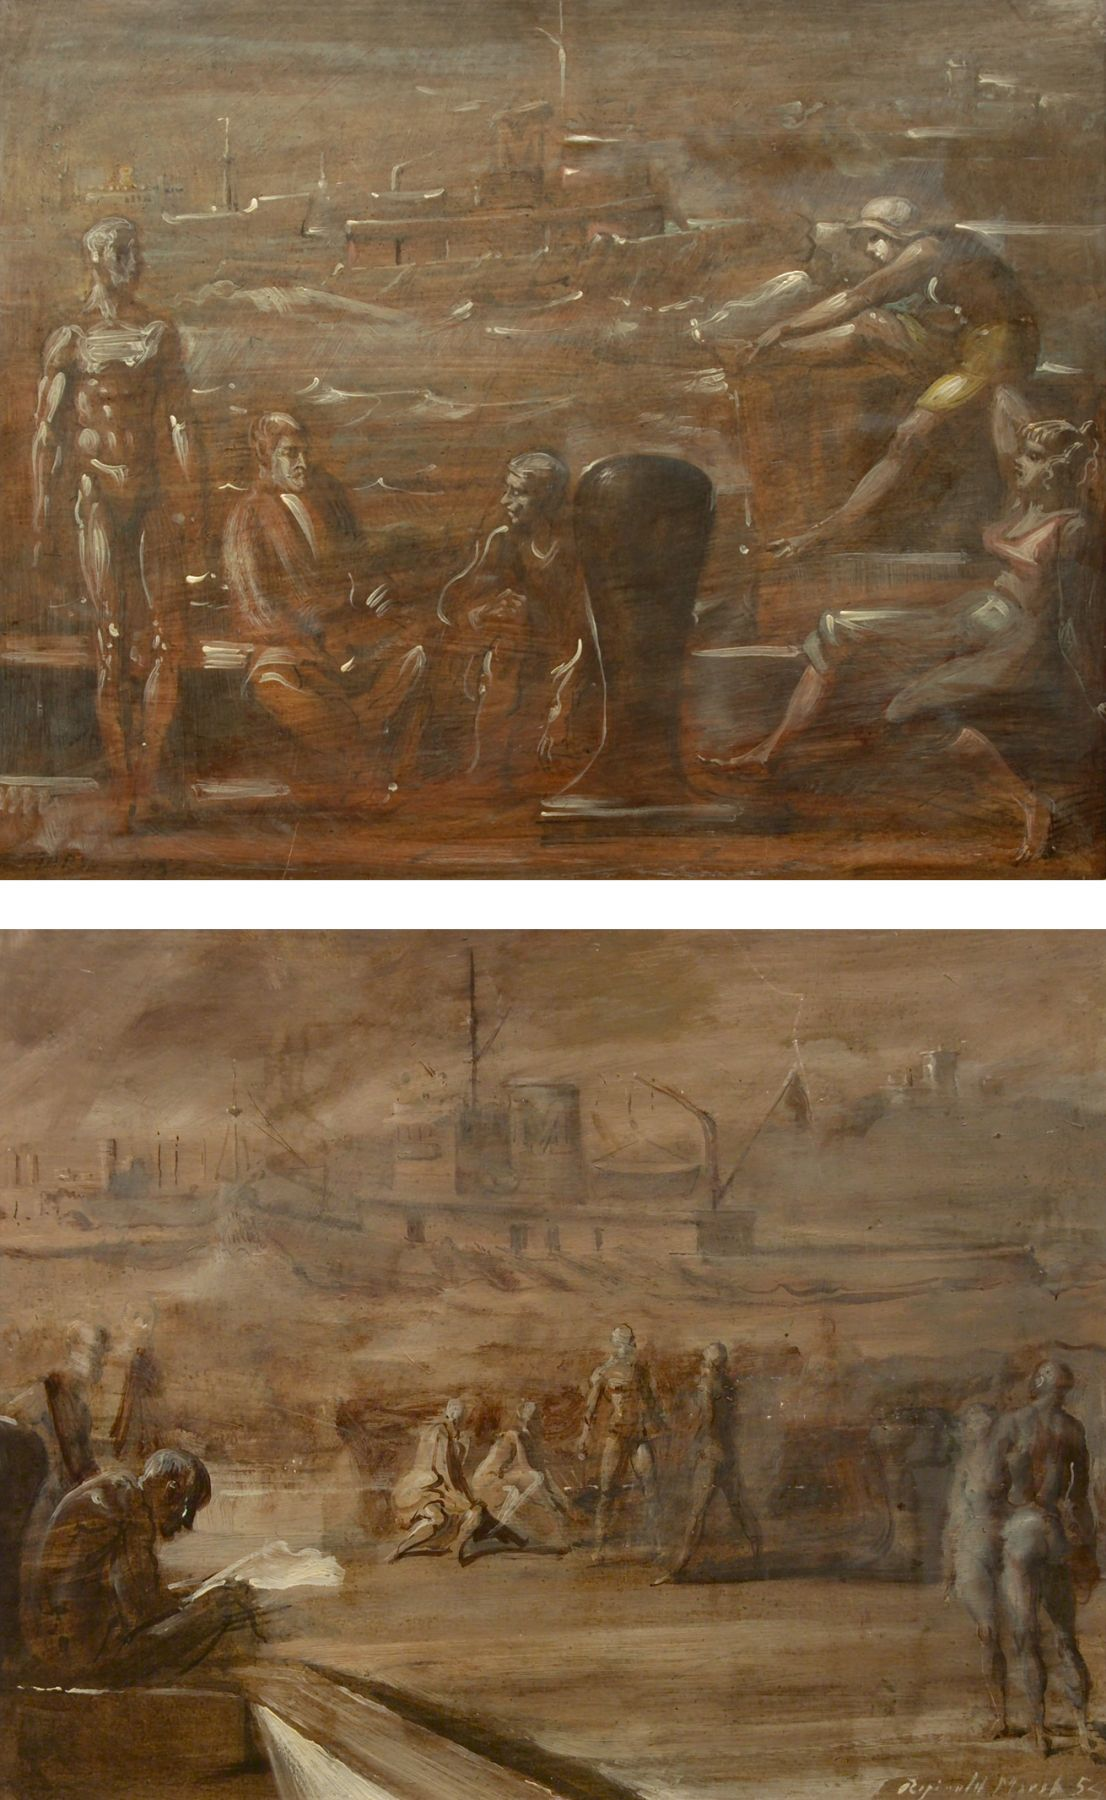 Reginald Marsh, Untitled Port Scene (Recto), Untitled Nudes on, on Port (Verso),1952 (recto), 1953 (verso), oil on panel, 16 x 20 (both sides)